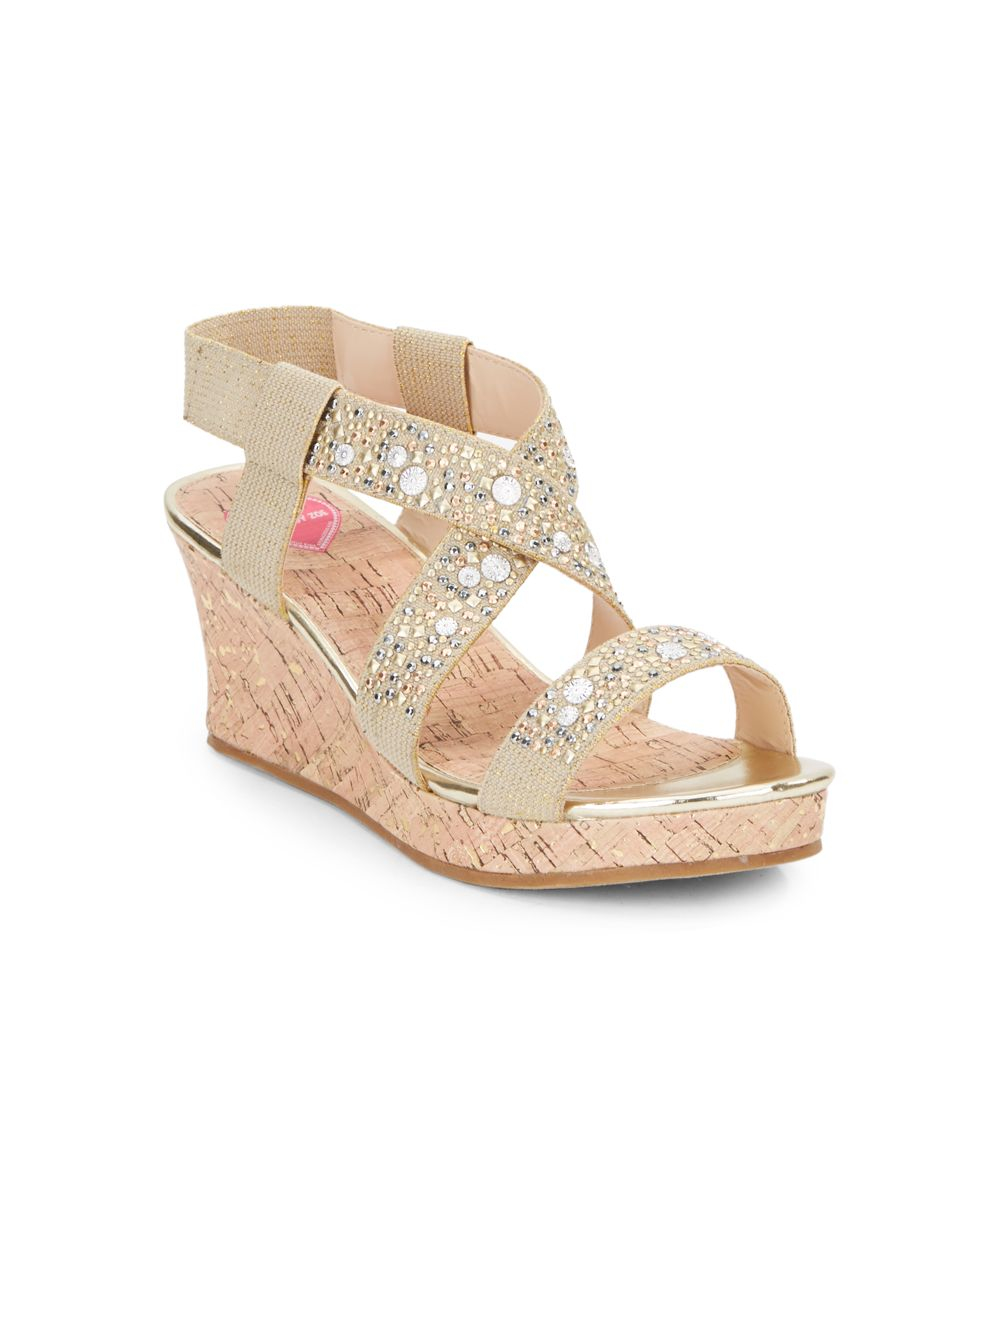 045954a55207 Flowers By Zoe Girl s Jeweled Wedge Sandals in Natural - Lyst